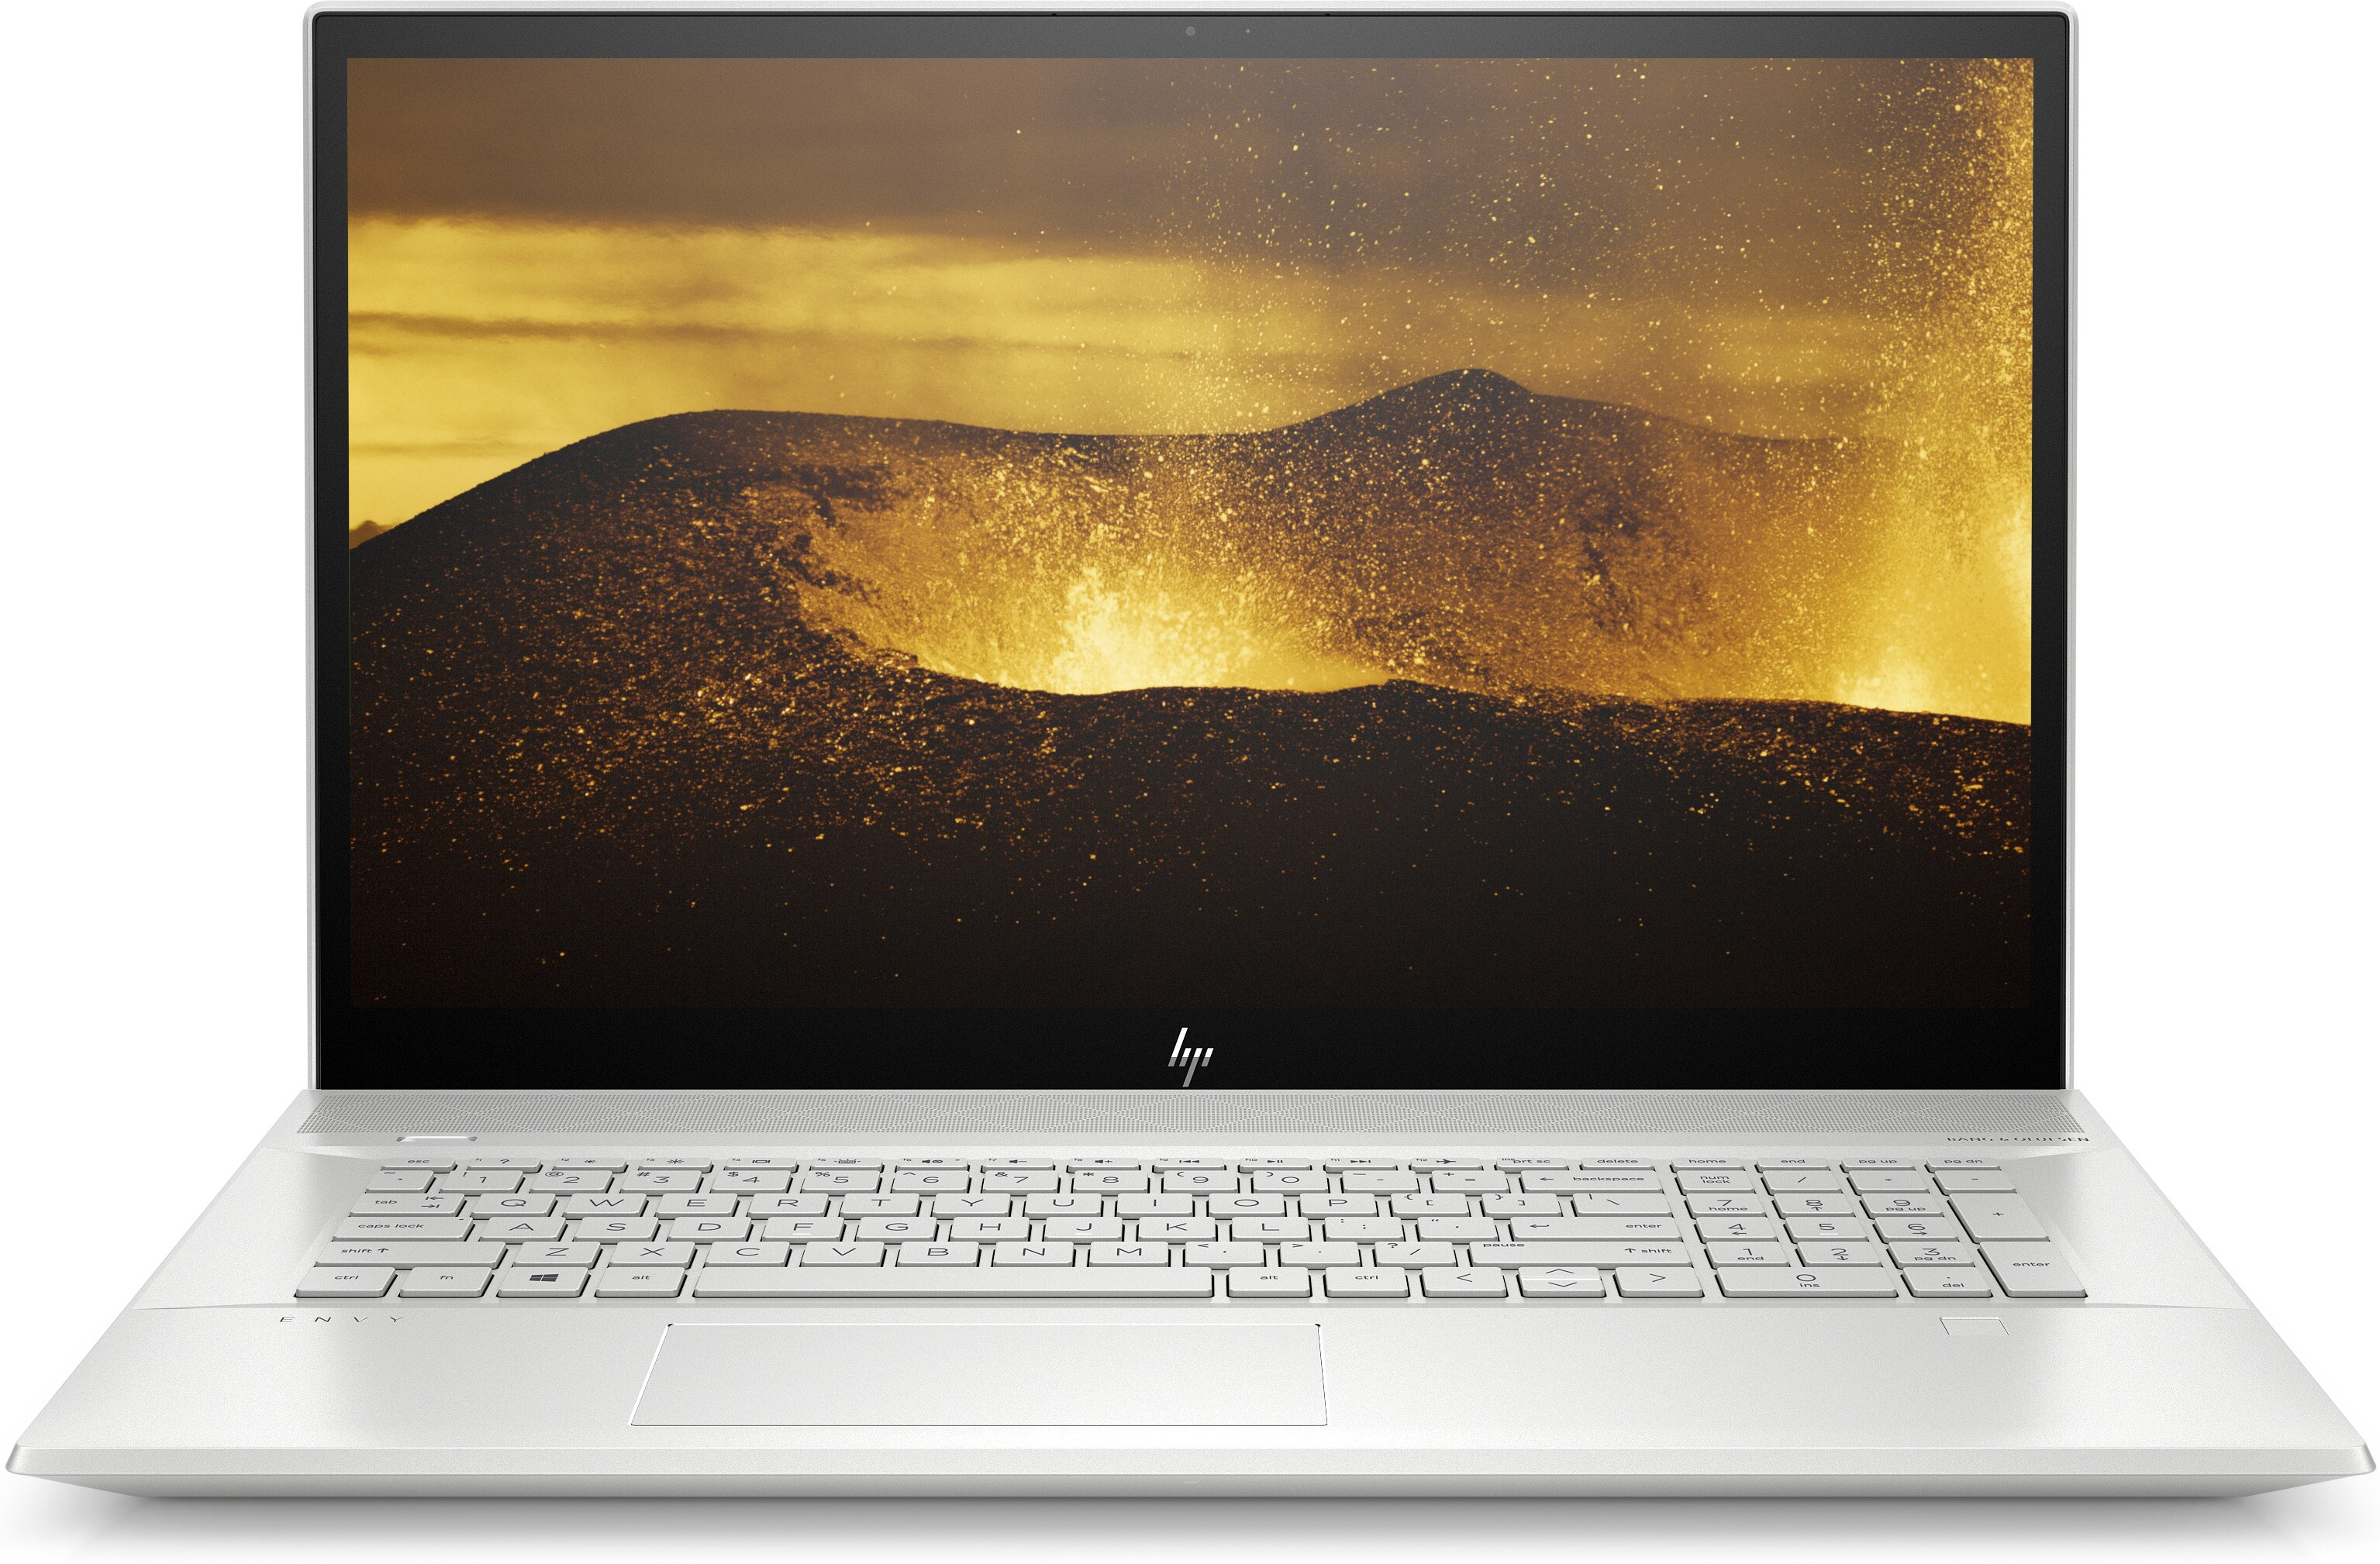 Hp Envy 17m Ce0013dx 17 3 Notebook Core I7 8565u 12gb Ram 512gb Sdd Nvidia Geforce Mx250 Windows 10 Home Factory Refurbished Walmart Com Walmart Com